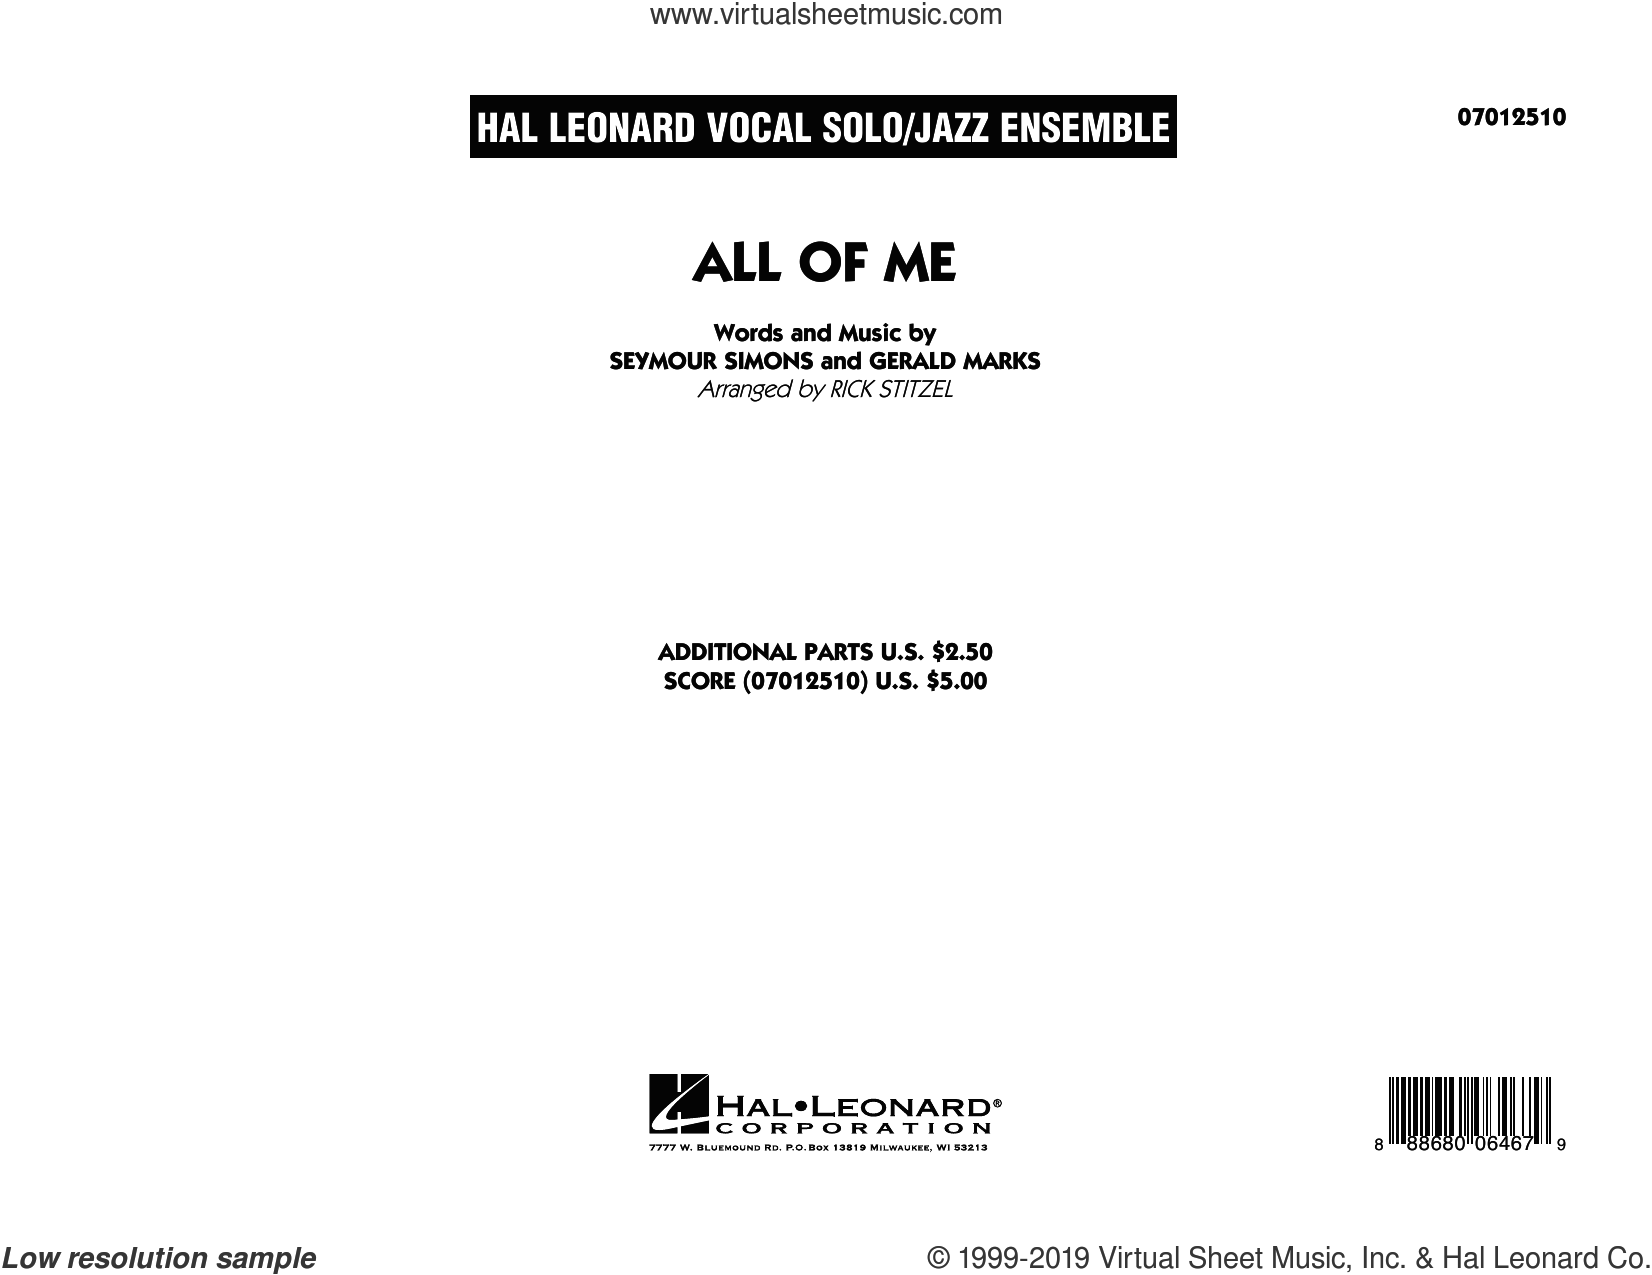 All of Me (Key: F) (COMPLETE) sheet music for jazz band by Rick Stitzel, Gerald Marks and Seymour Simons, intermediate skill level